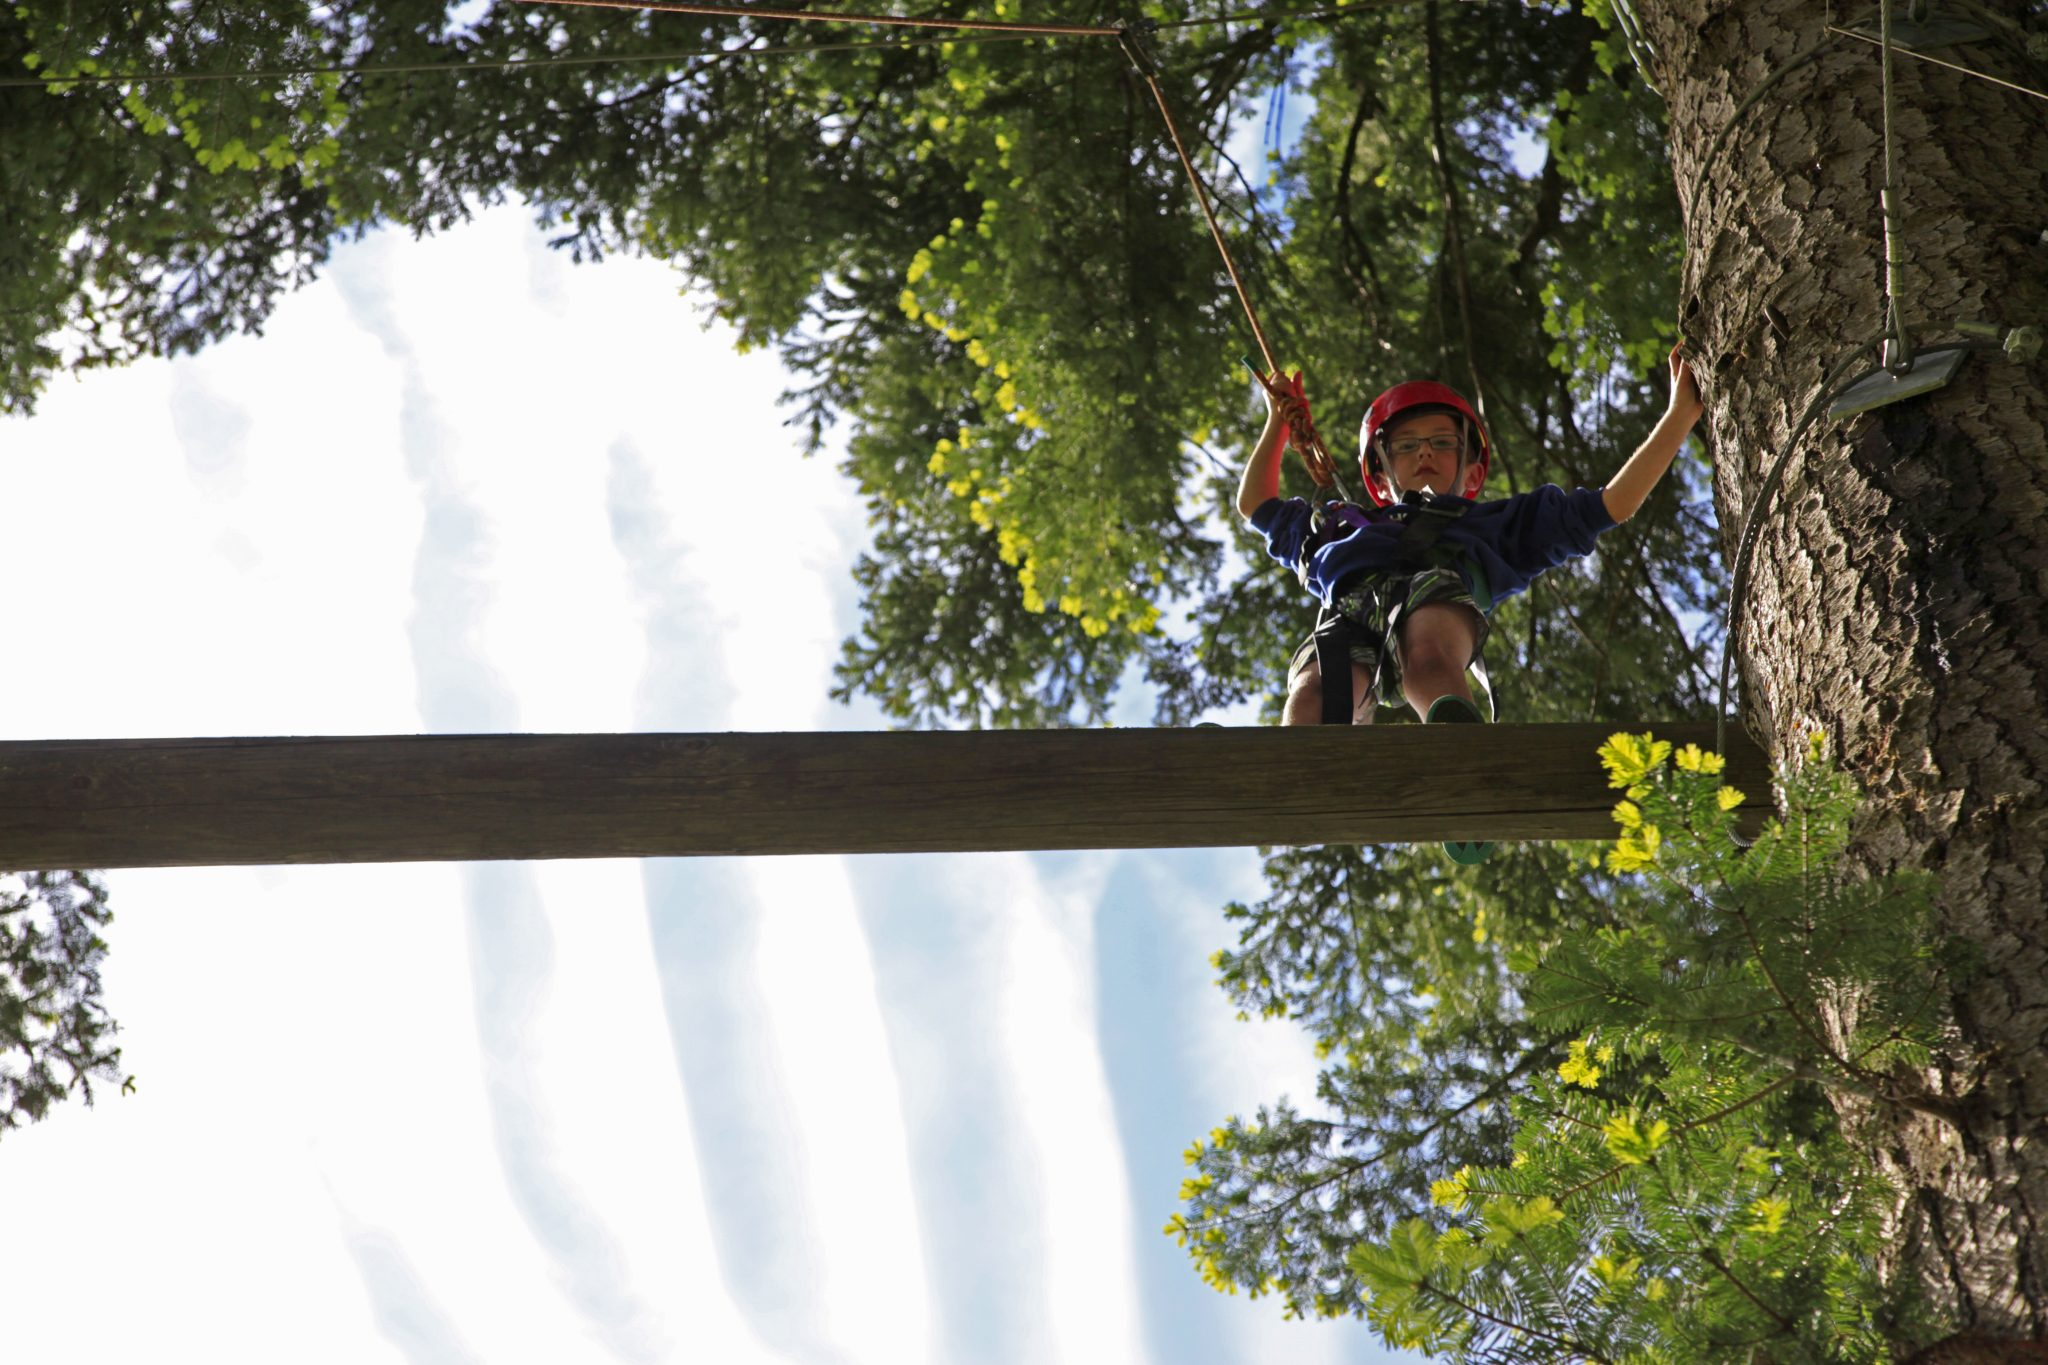 Young person on climbing challenge